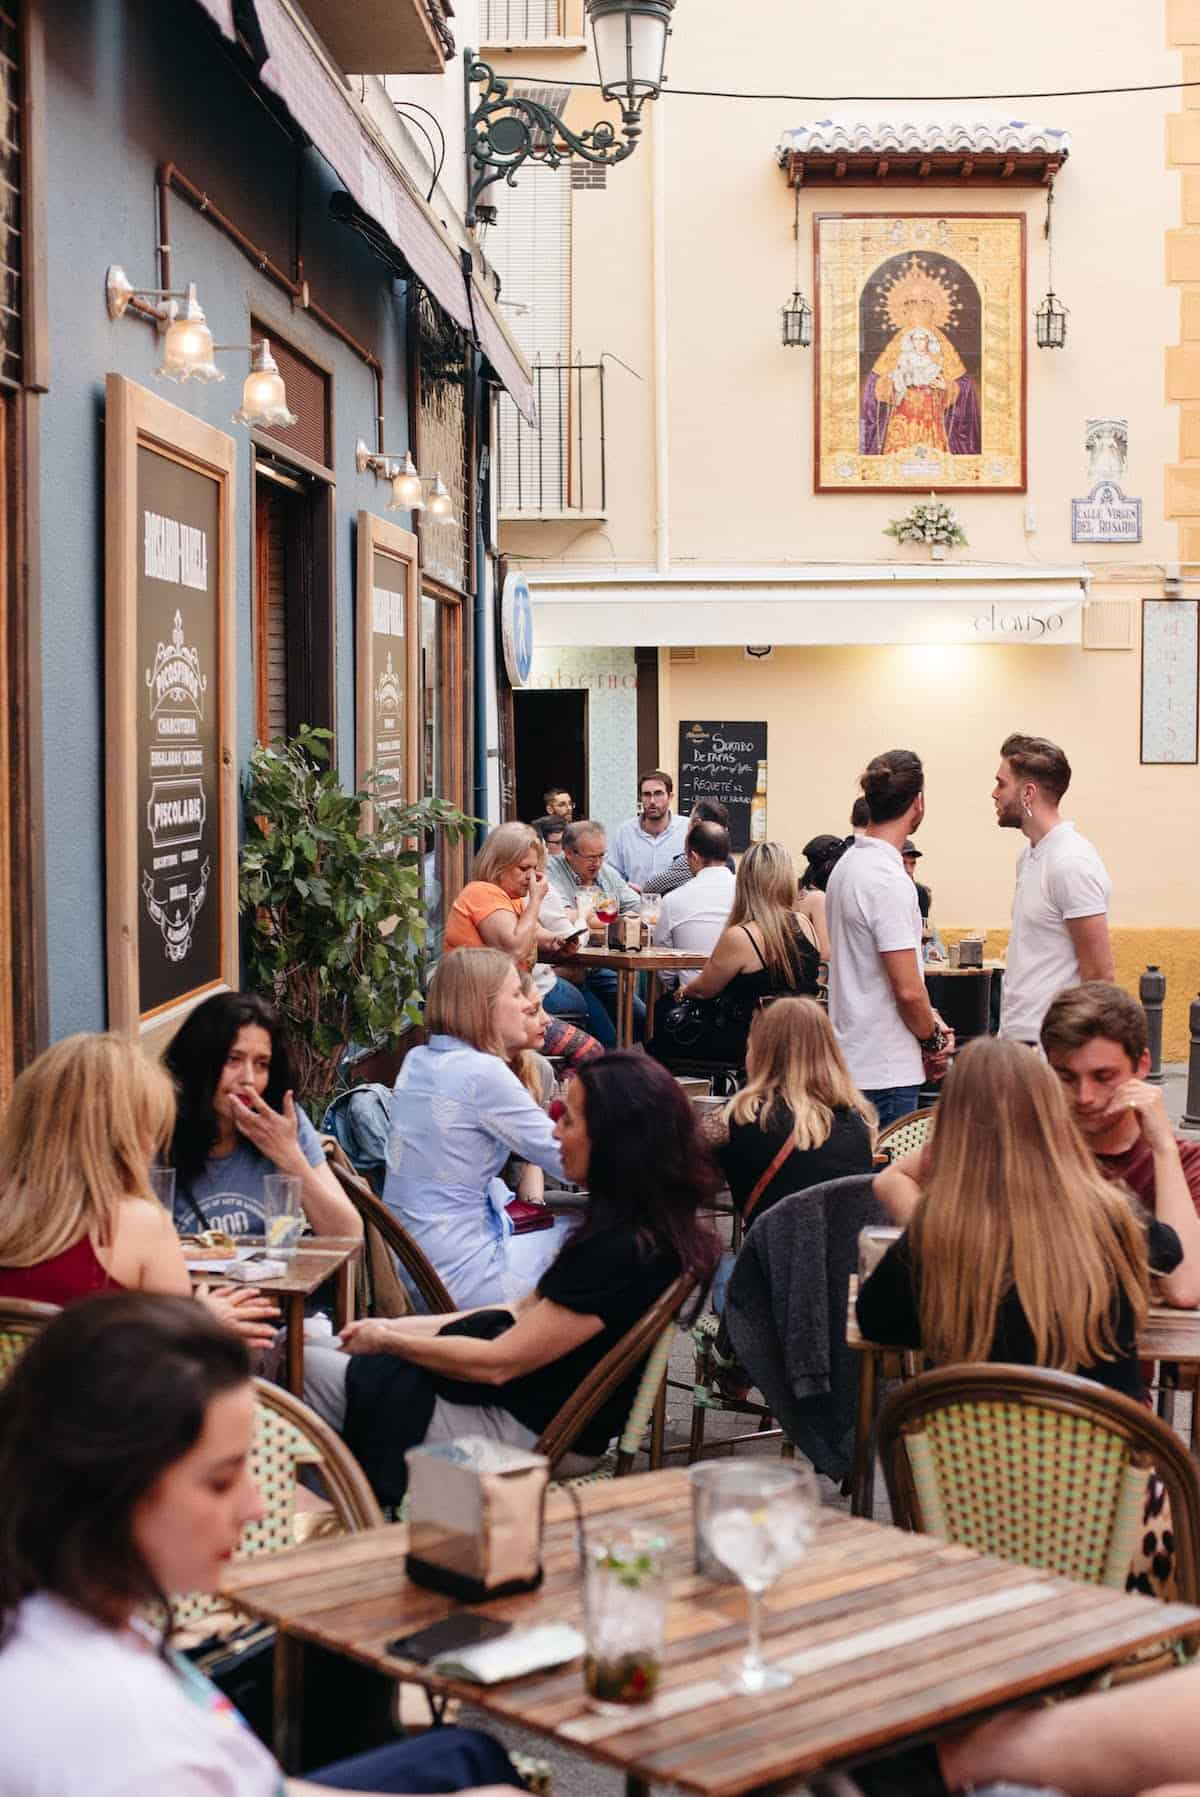 People eating and drinking on a crowded outdoor terrace outside a bar.